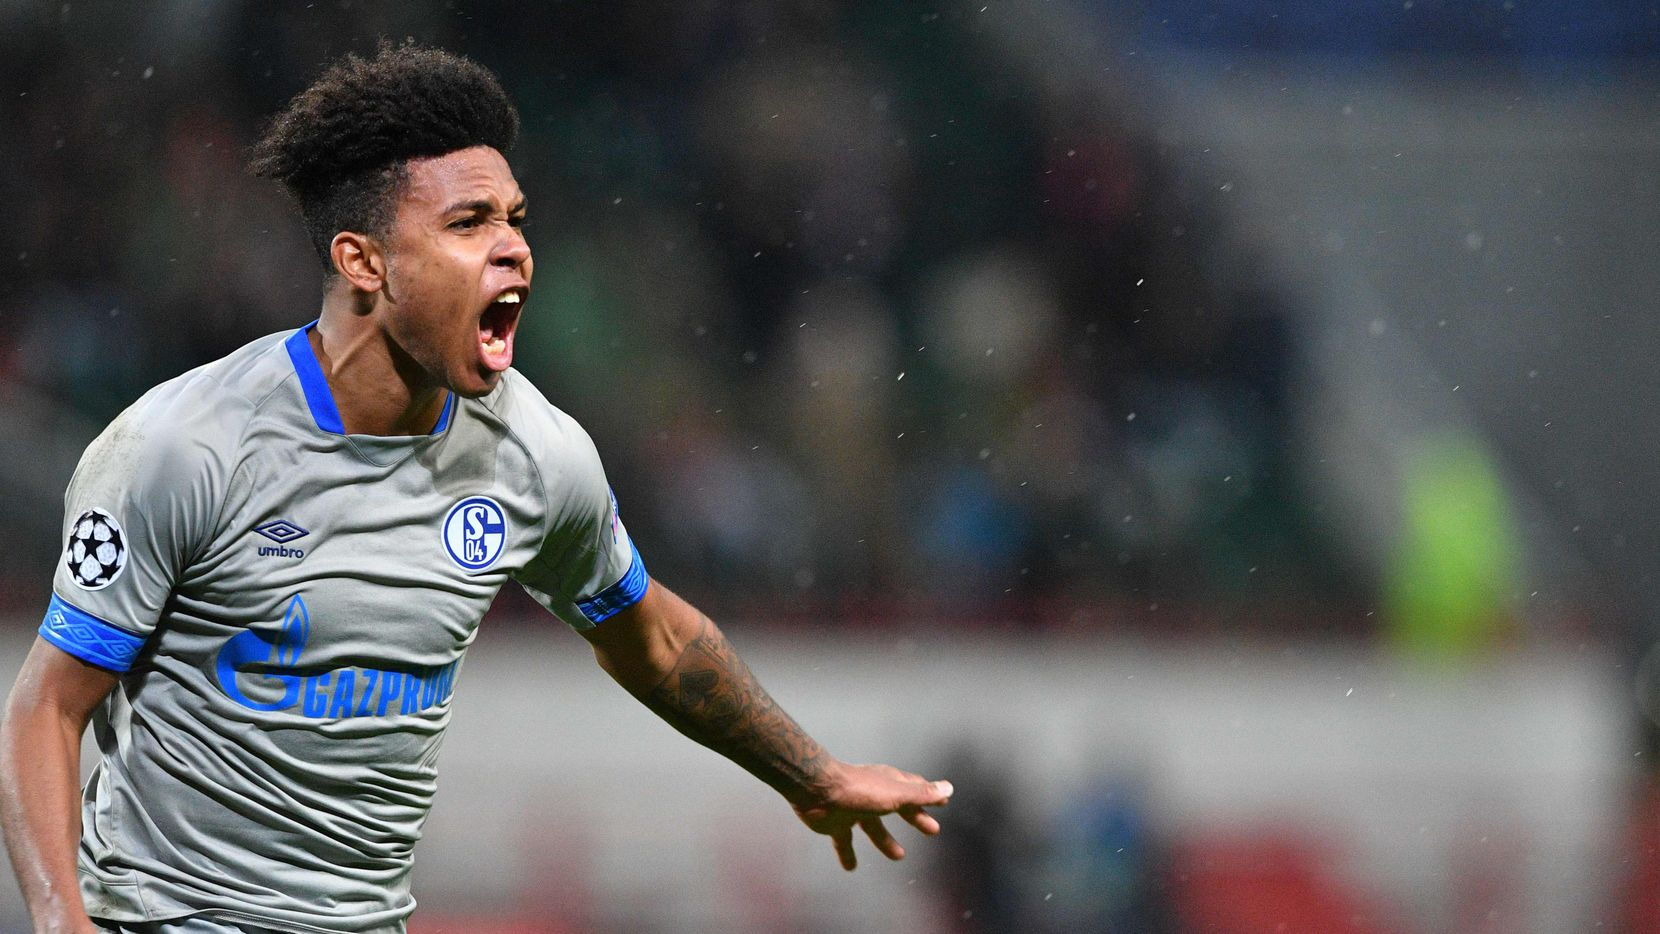 Schalke's US midfielder Weston McKennie celebrates after scoring a goal during the UEFA Champions League group D football match between FC Lokomotiv Moscow and FC Schalke 04 at the RZD Arena in Moscow on October 3, 2018.